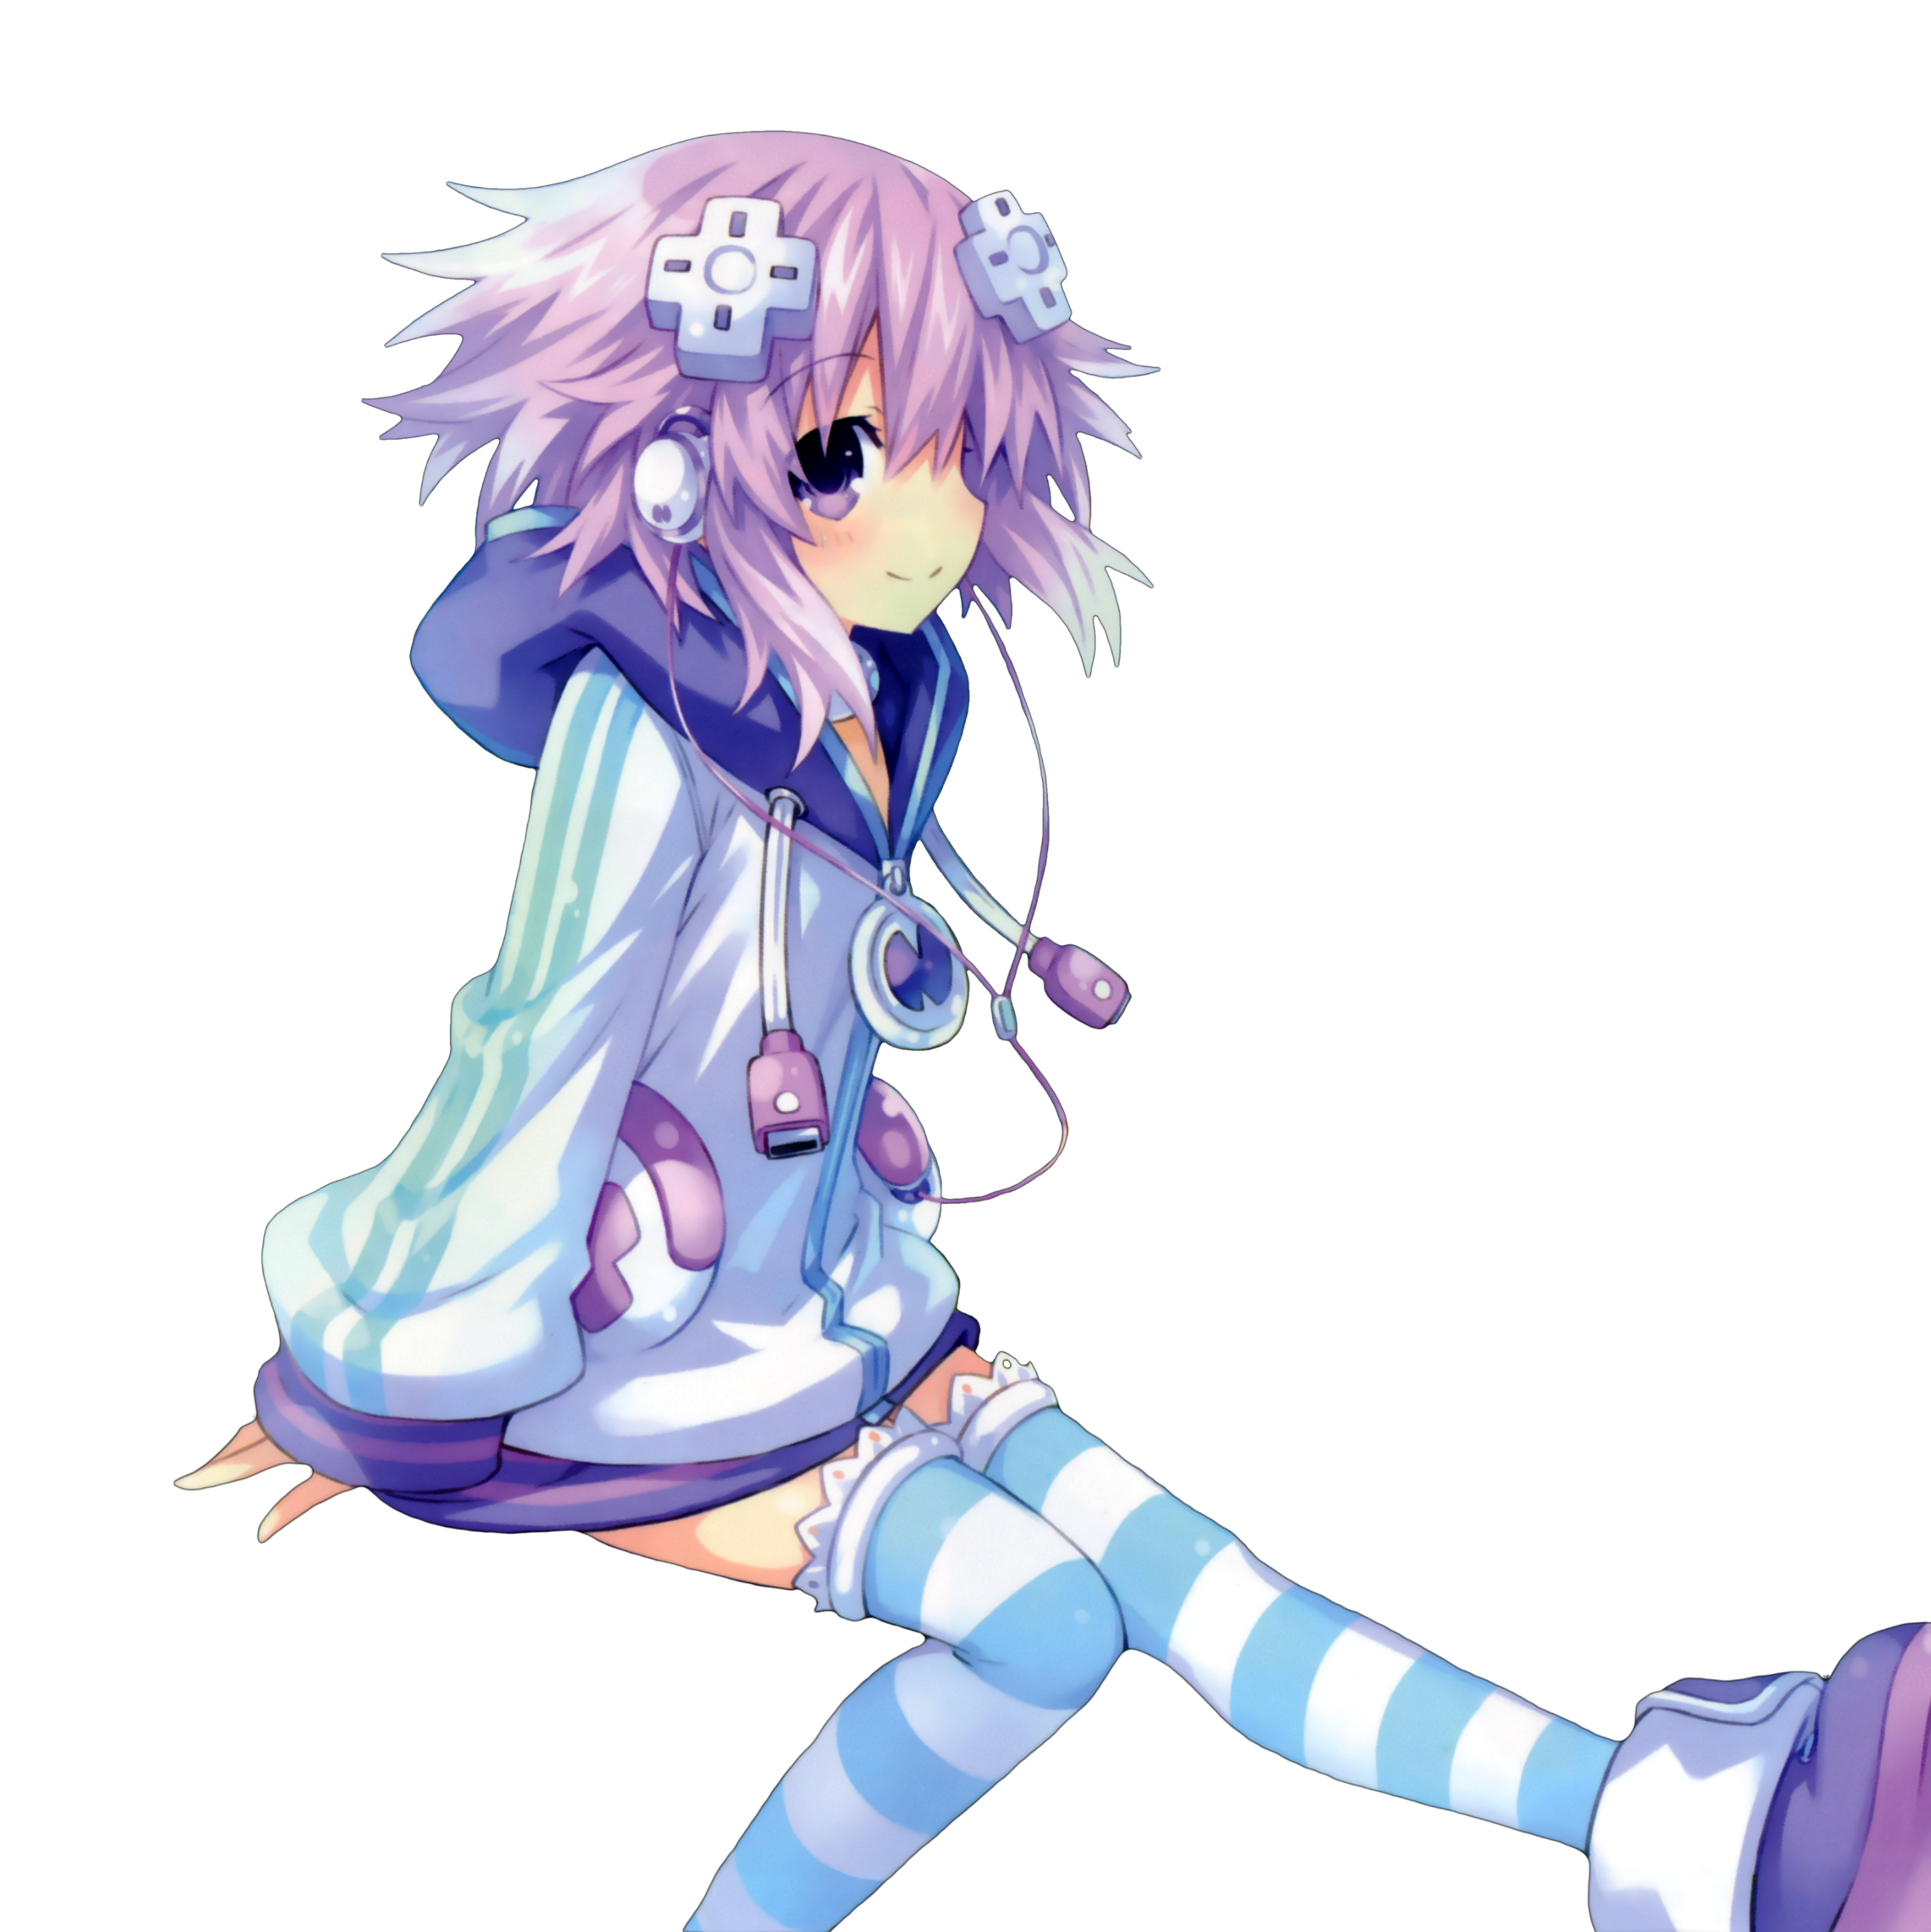 Neptune scan render gamindustri. Neptunia transparent vector library stock